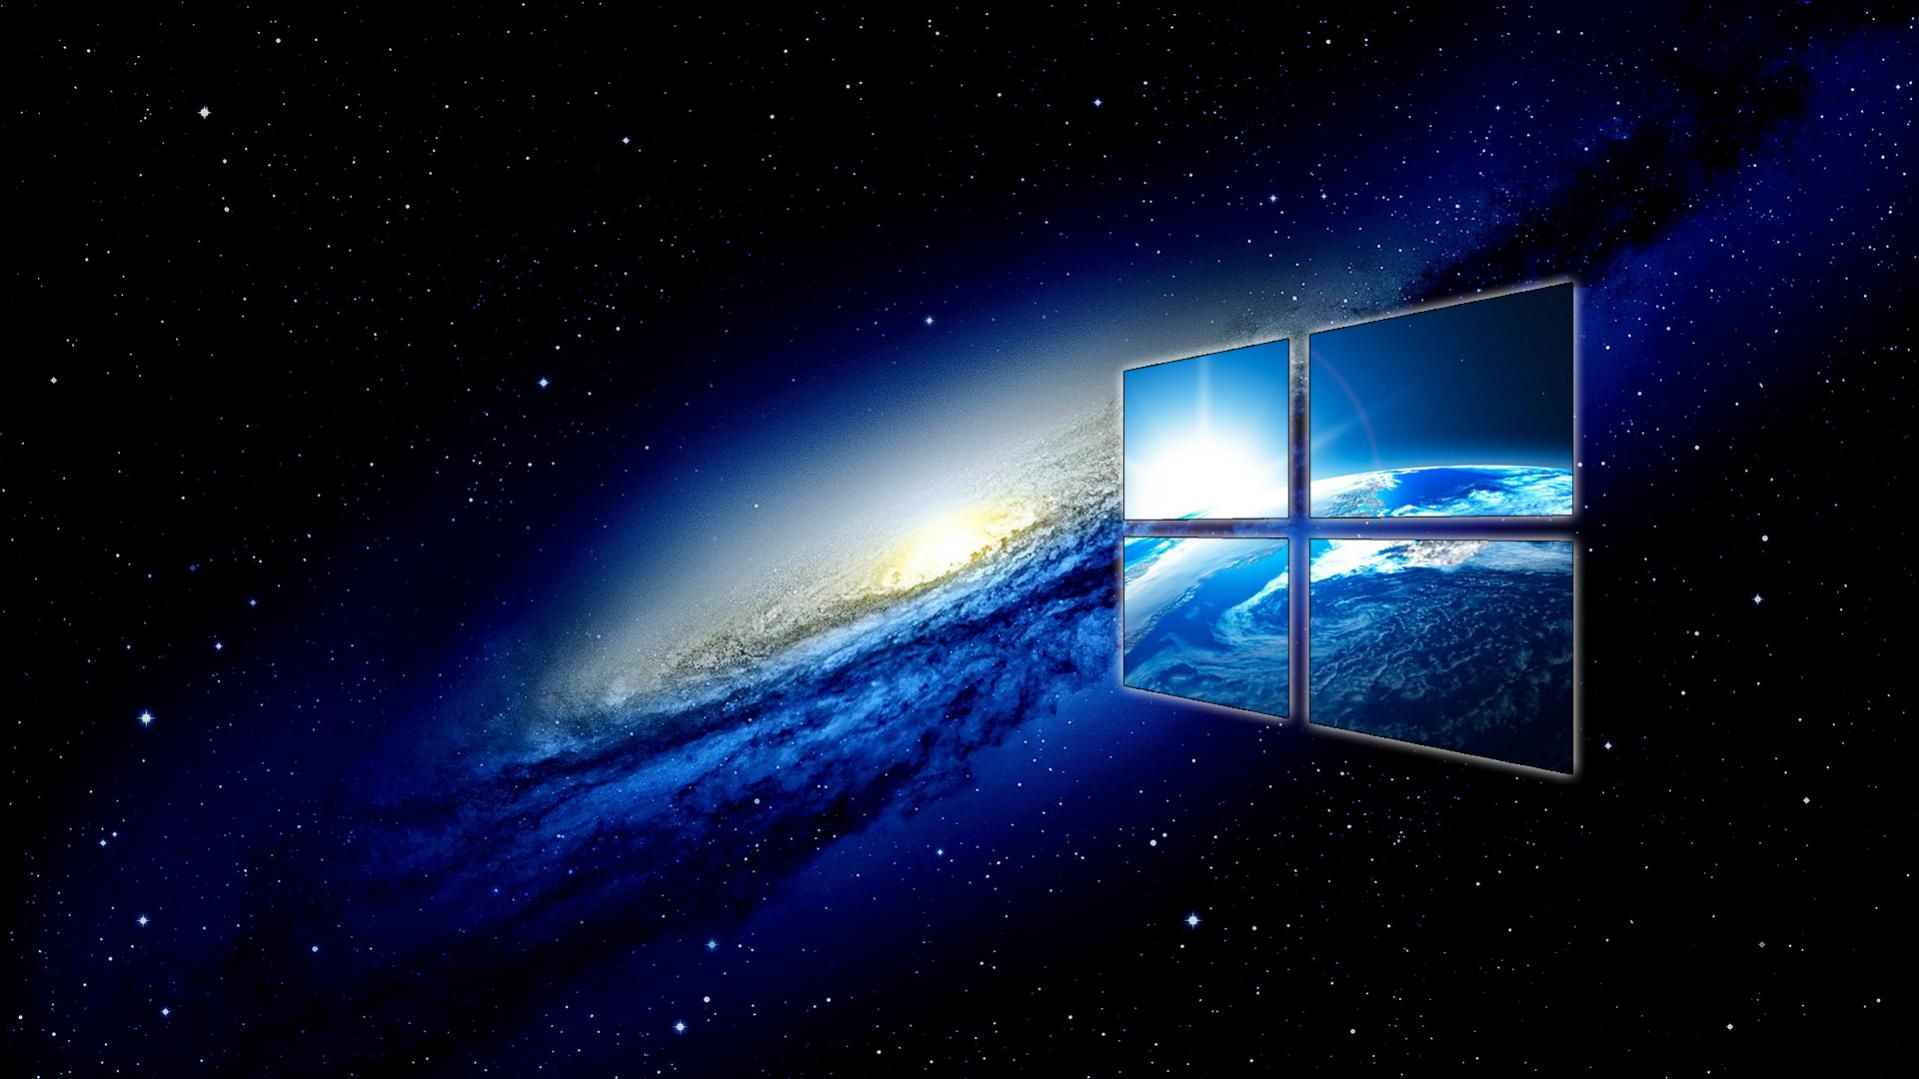 Window 10 Wallpaper Full Hd Window 10 Wallpapers In 2020